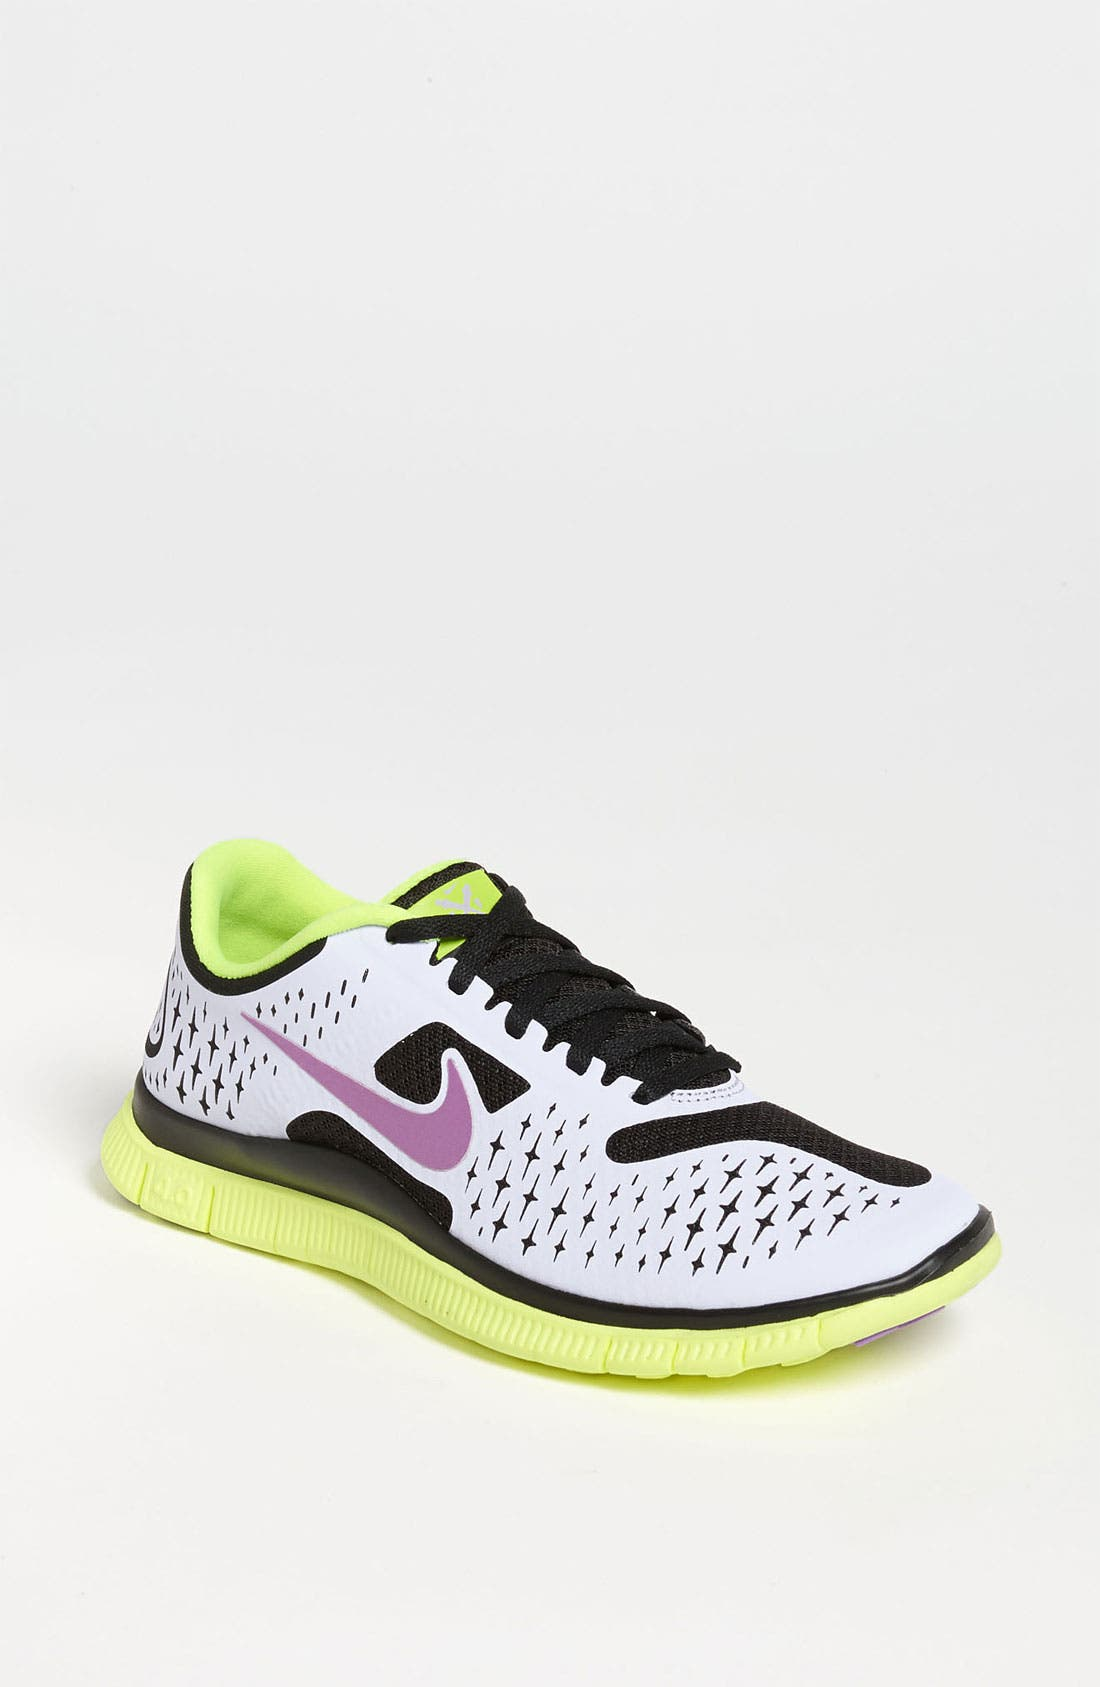 Alternate Image 1 Selected - Nike 'Free 4.0 V2' Running Shoe (Women)